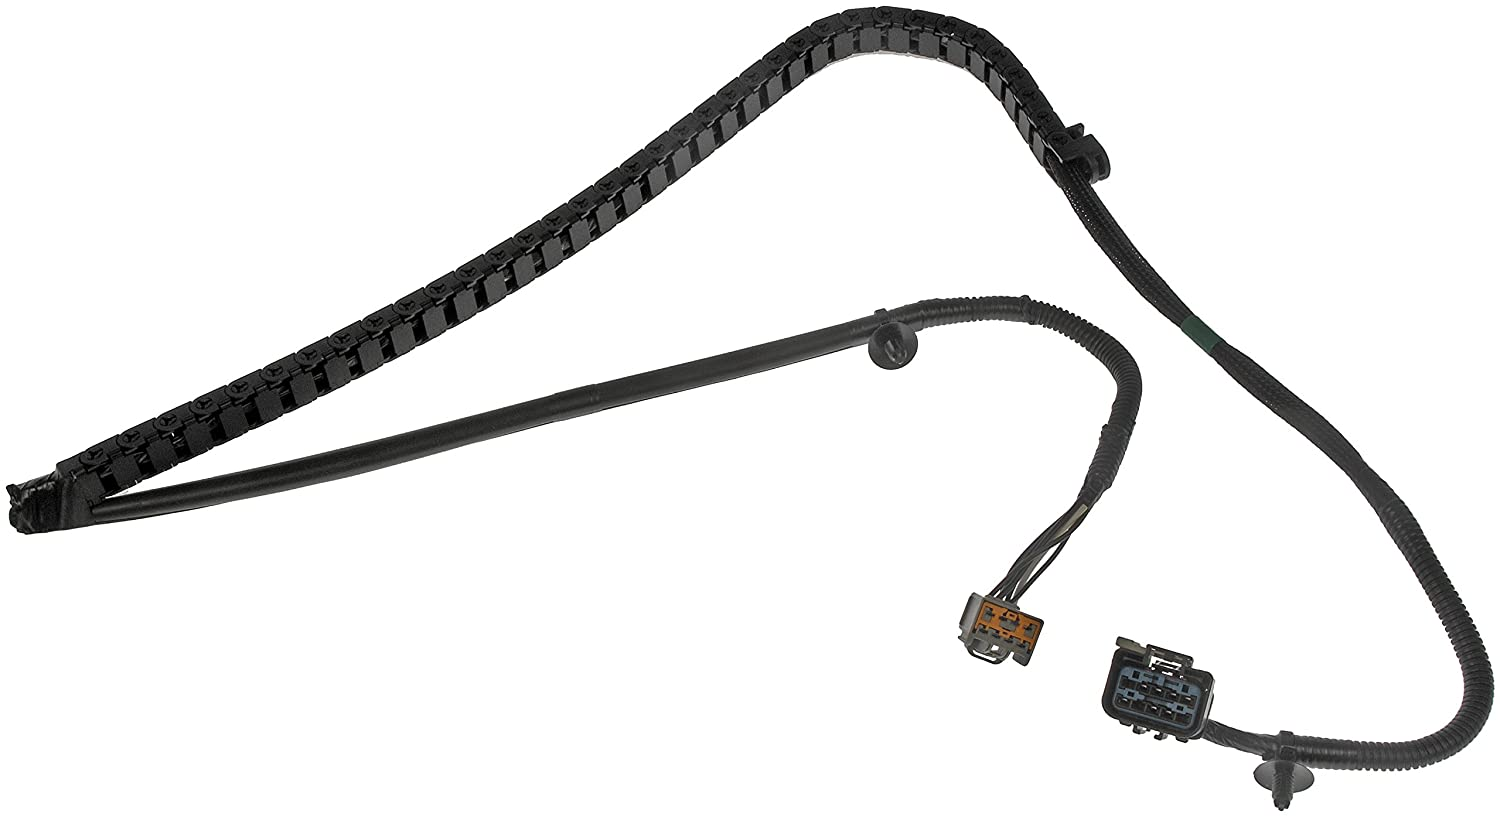 71%2B72I0QwkL._SL1500_ amazon com dorman 747 311 passenger side sliding door harness wiring harness for chrysler town and country at crackthecode.co